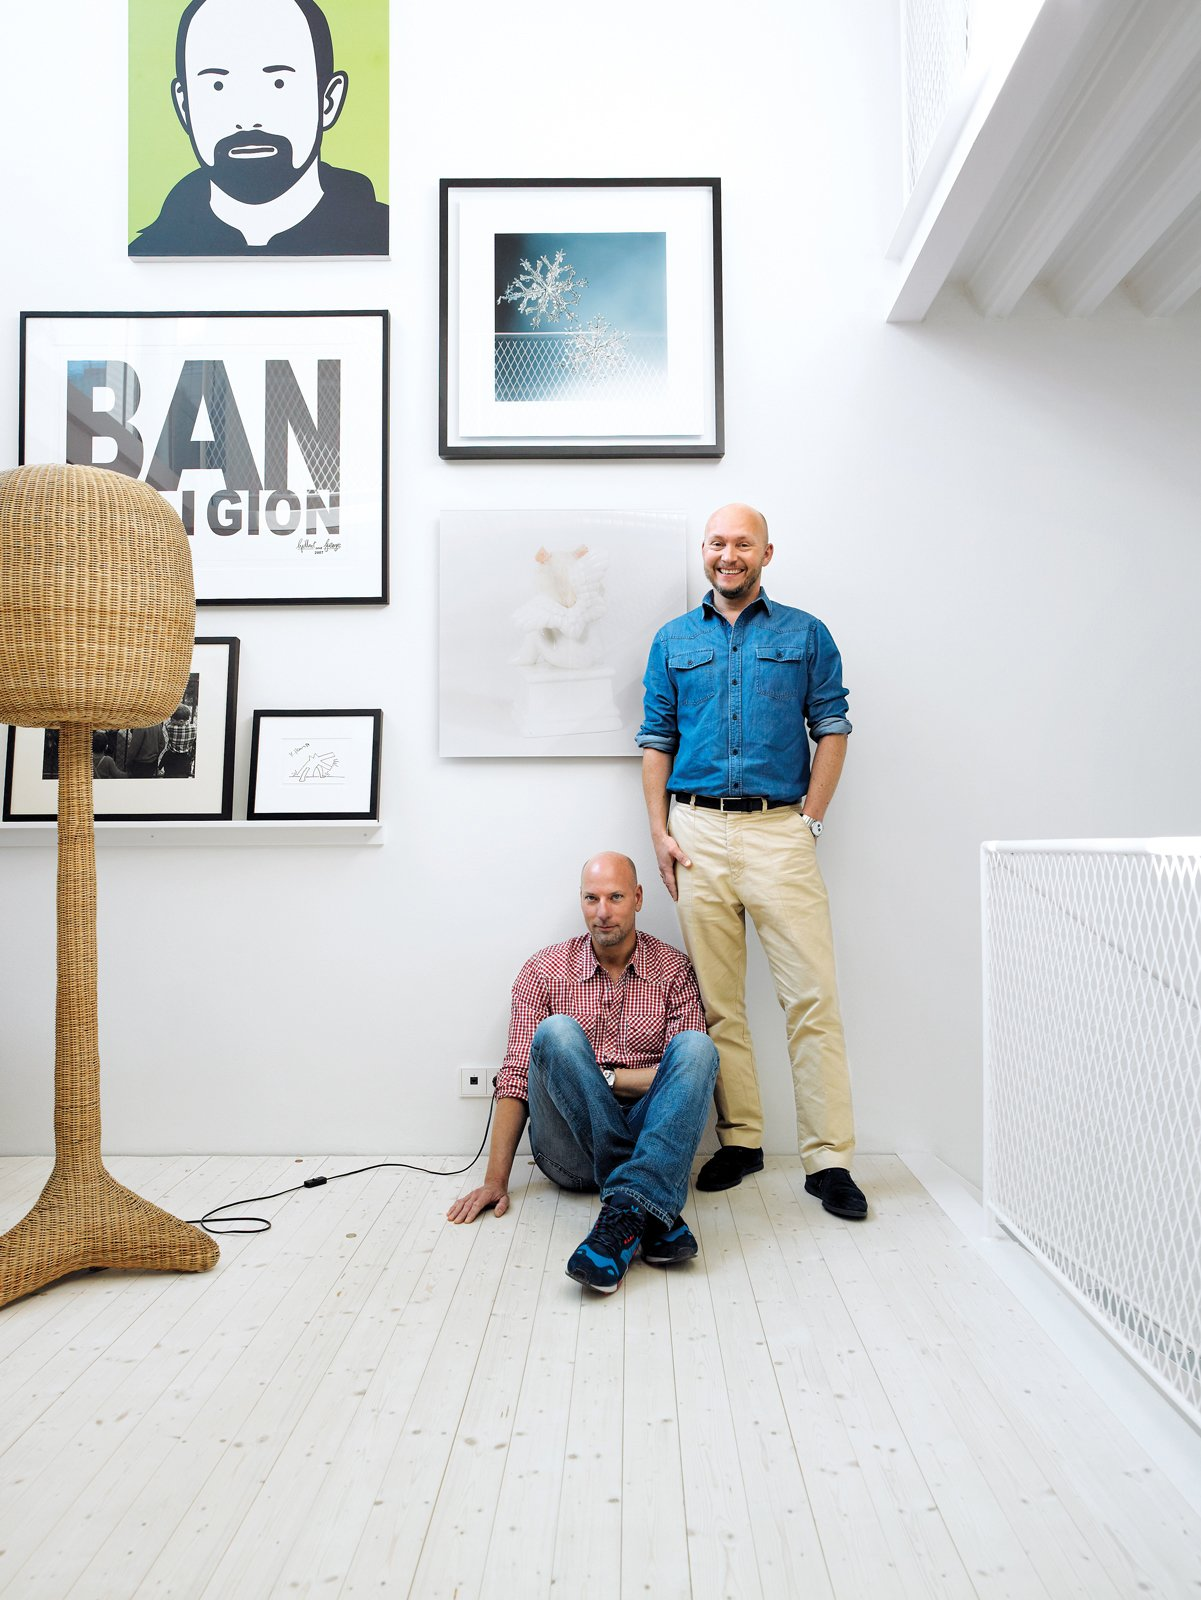 Johnny Lökaas and Conny Ahlgren pose in their living room with some of their art collection, which includes a Julian Opie portrait and works by Keith Haring and others. Space to show the art and good light for viewing it were the priorities.